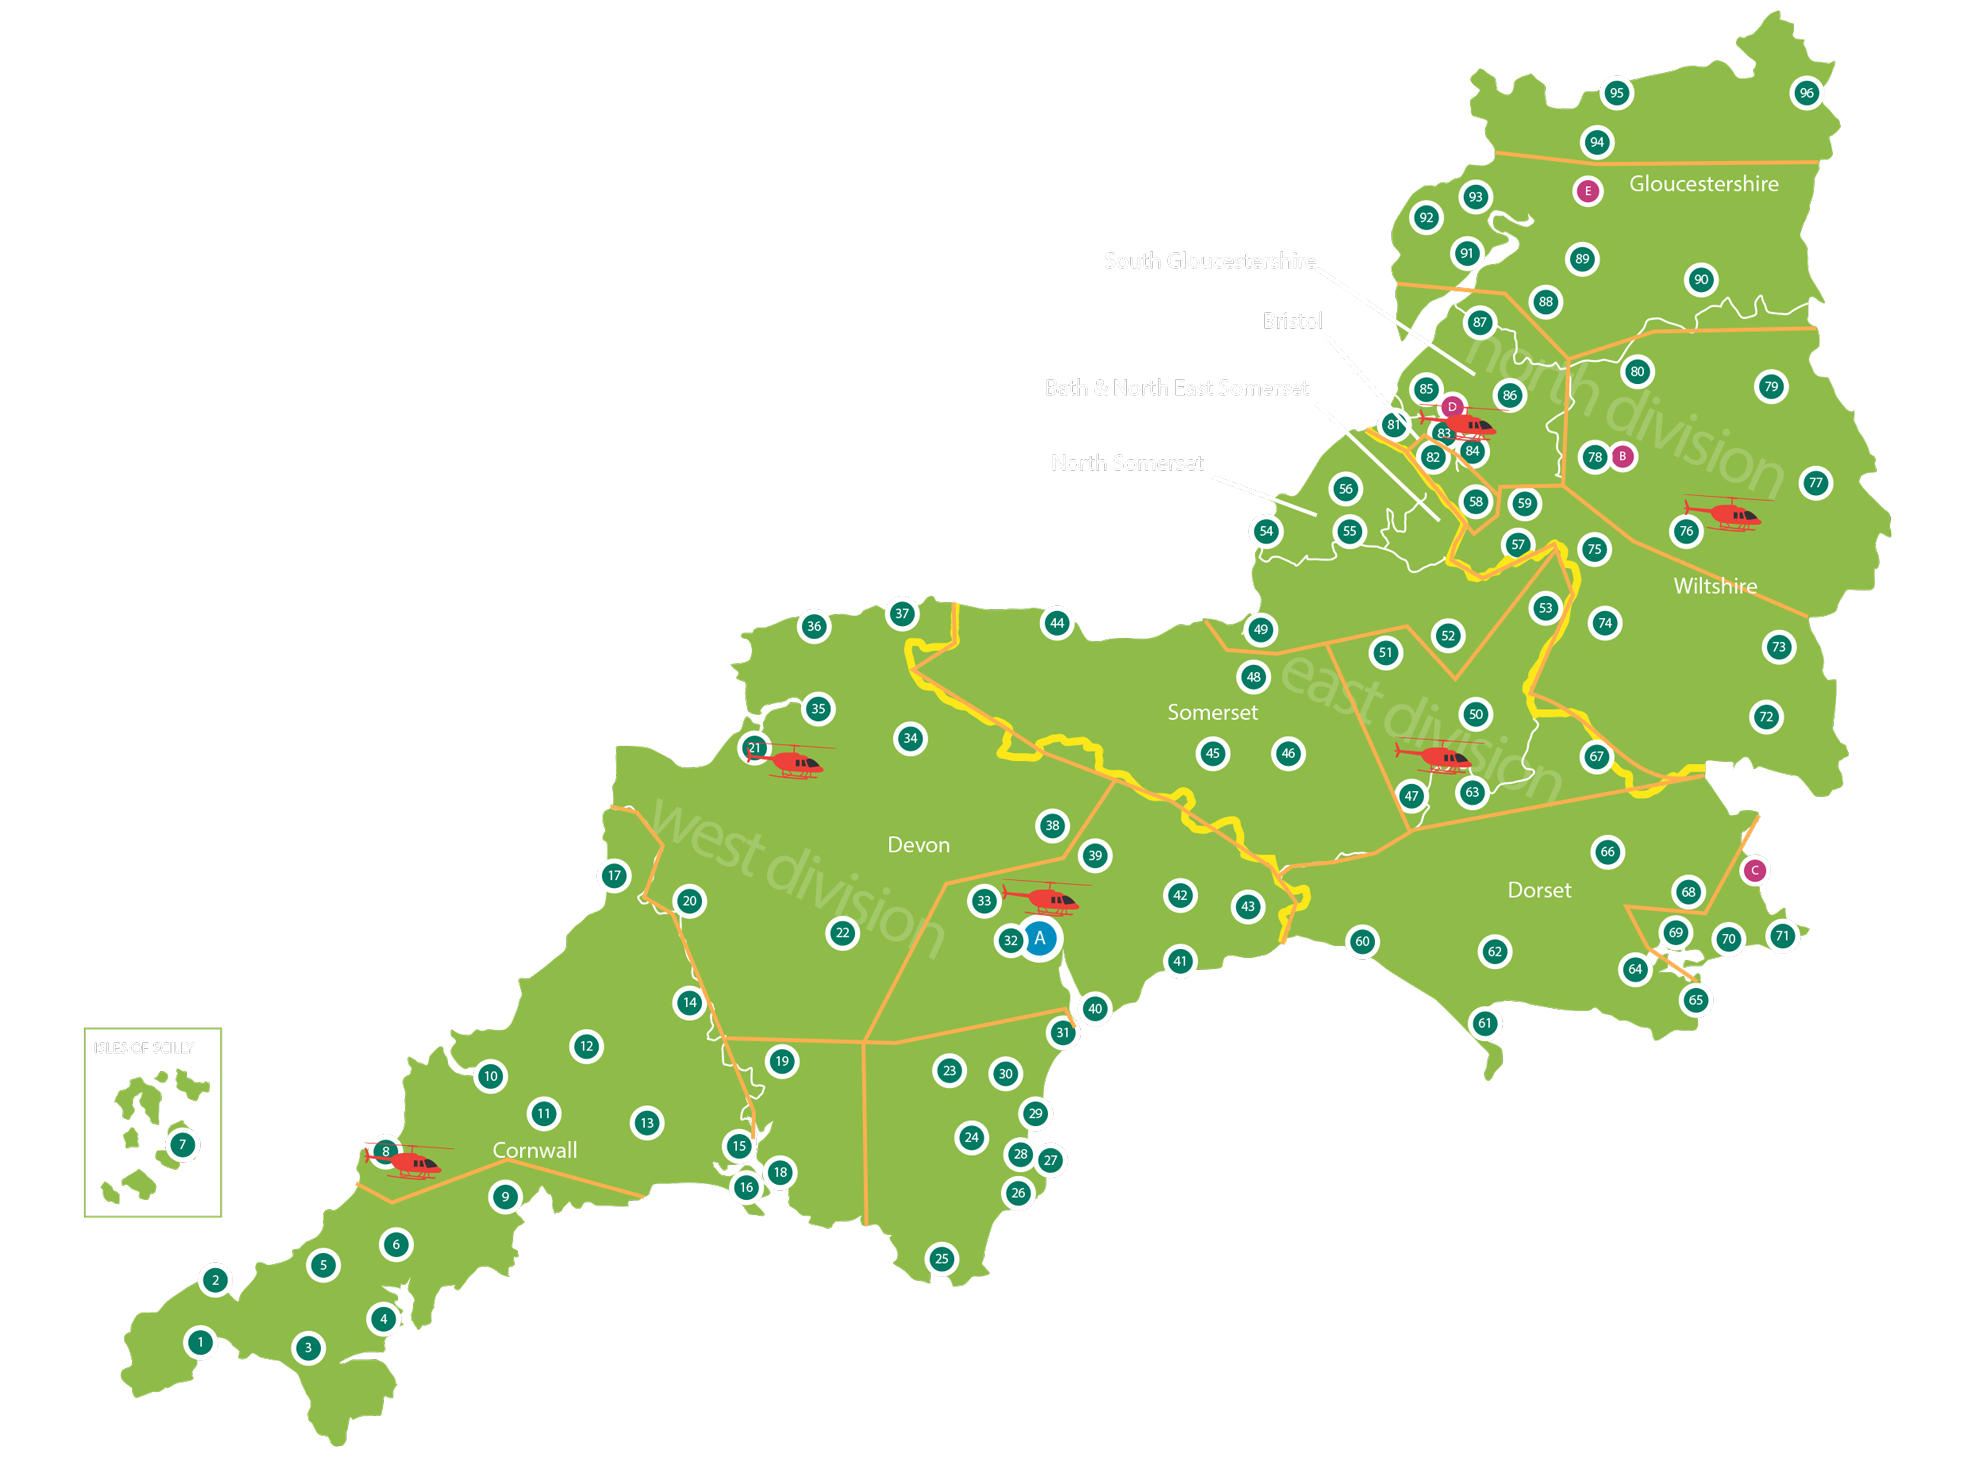 Areas covered by the South Western Ambulance Service